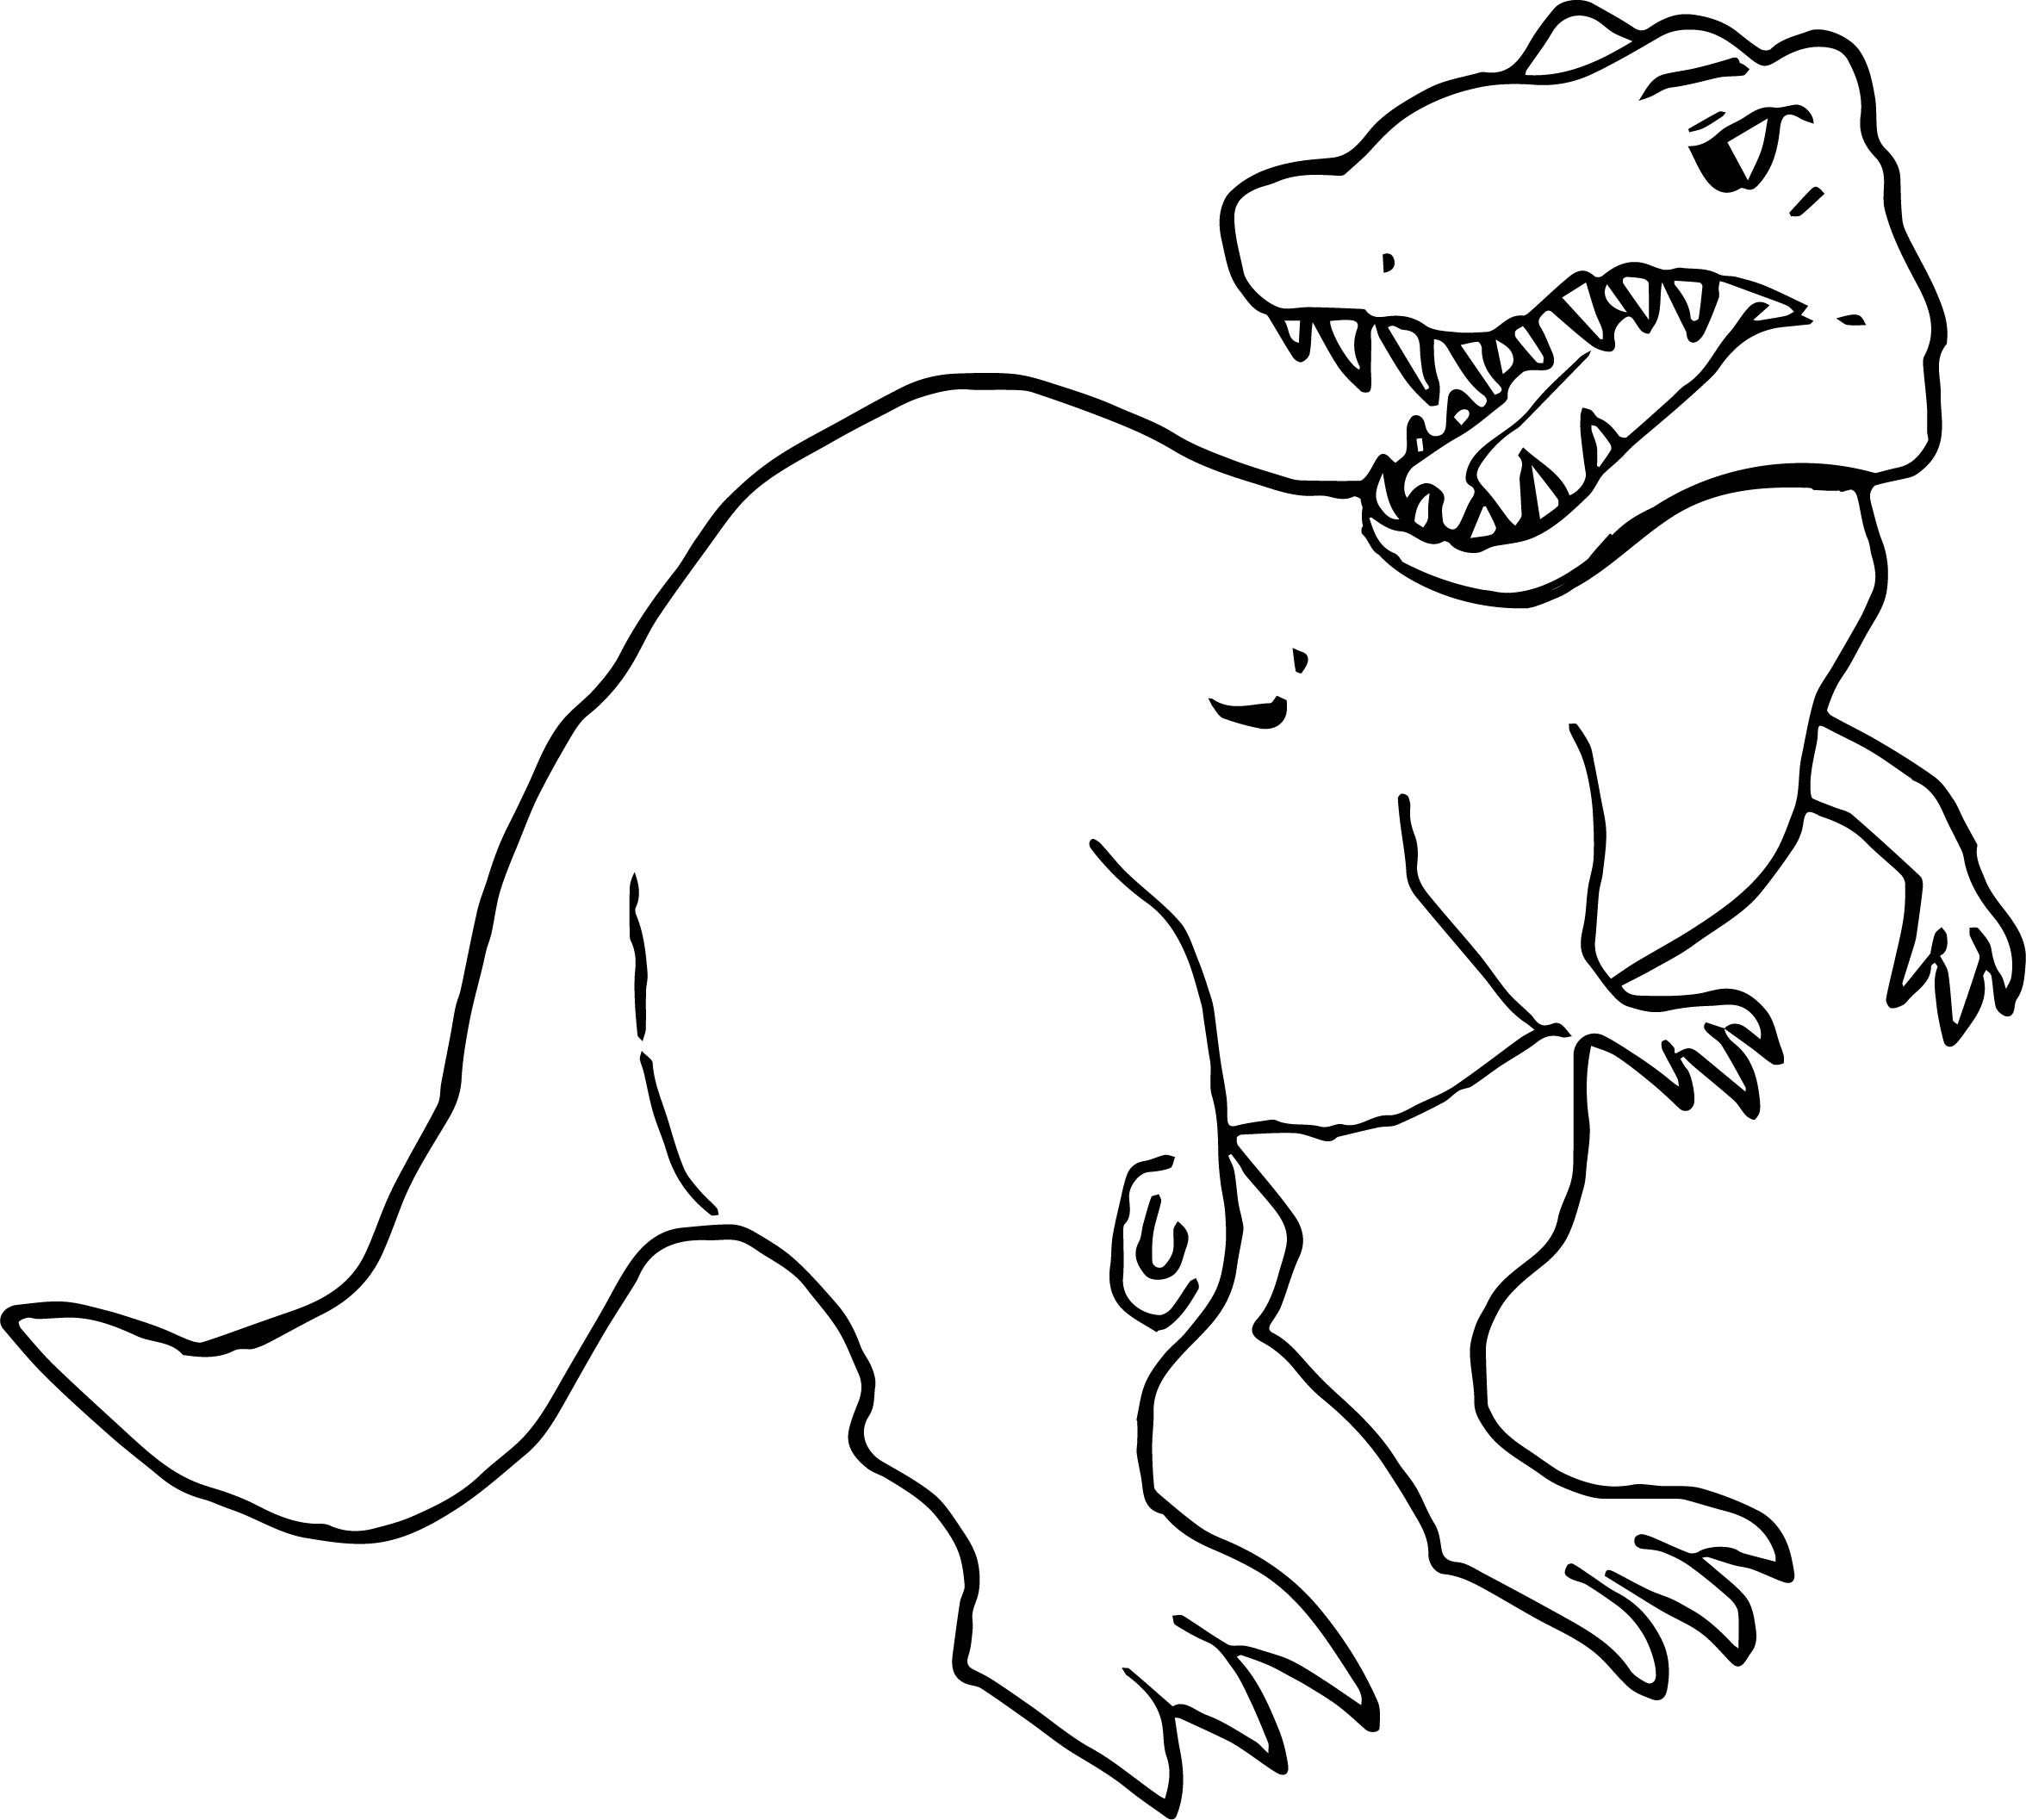 2352x2113 Baby T Rex Coloring Pages Free Draw To Color